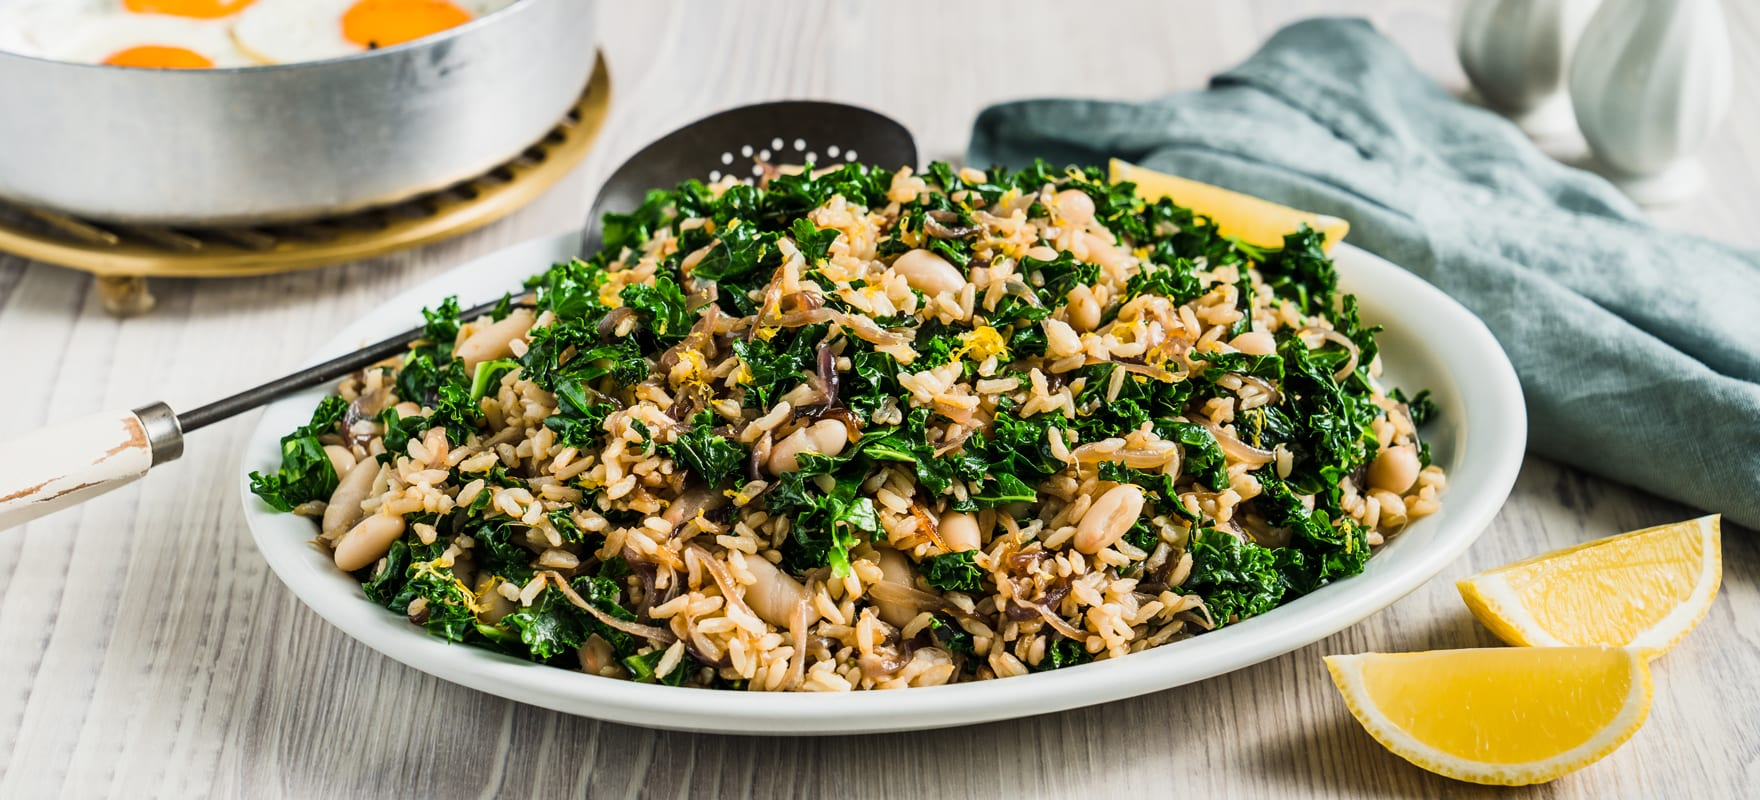 Caramelised onion & kale rice image 1